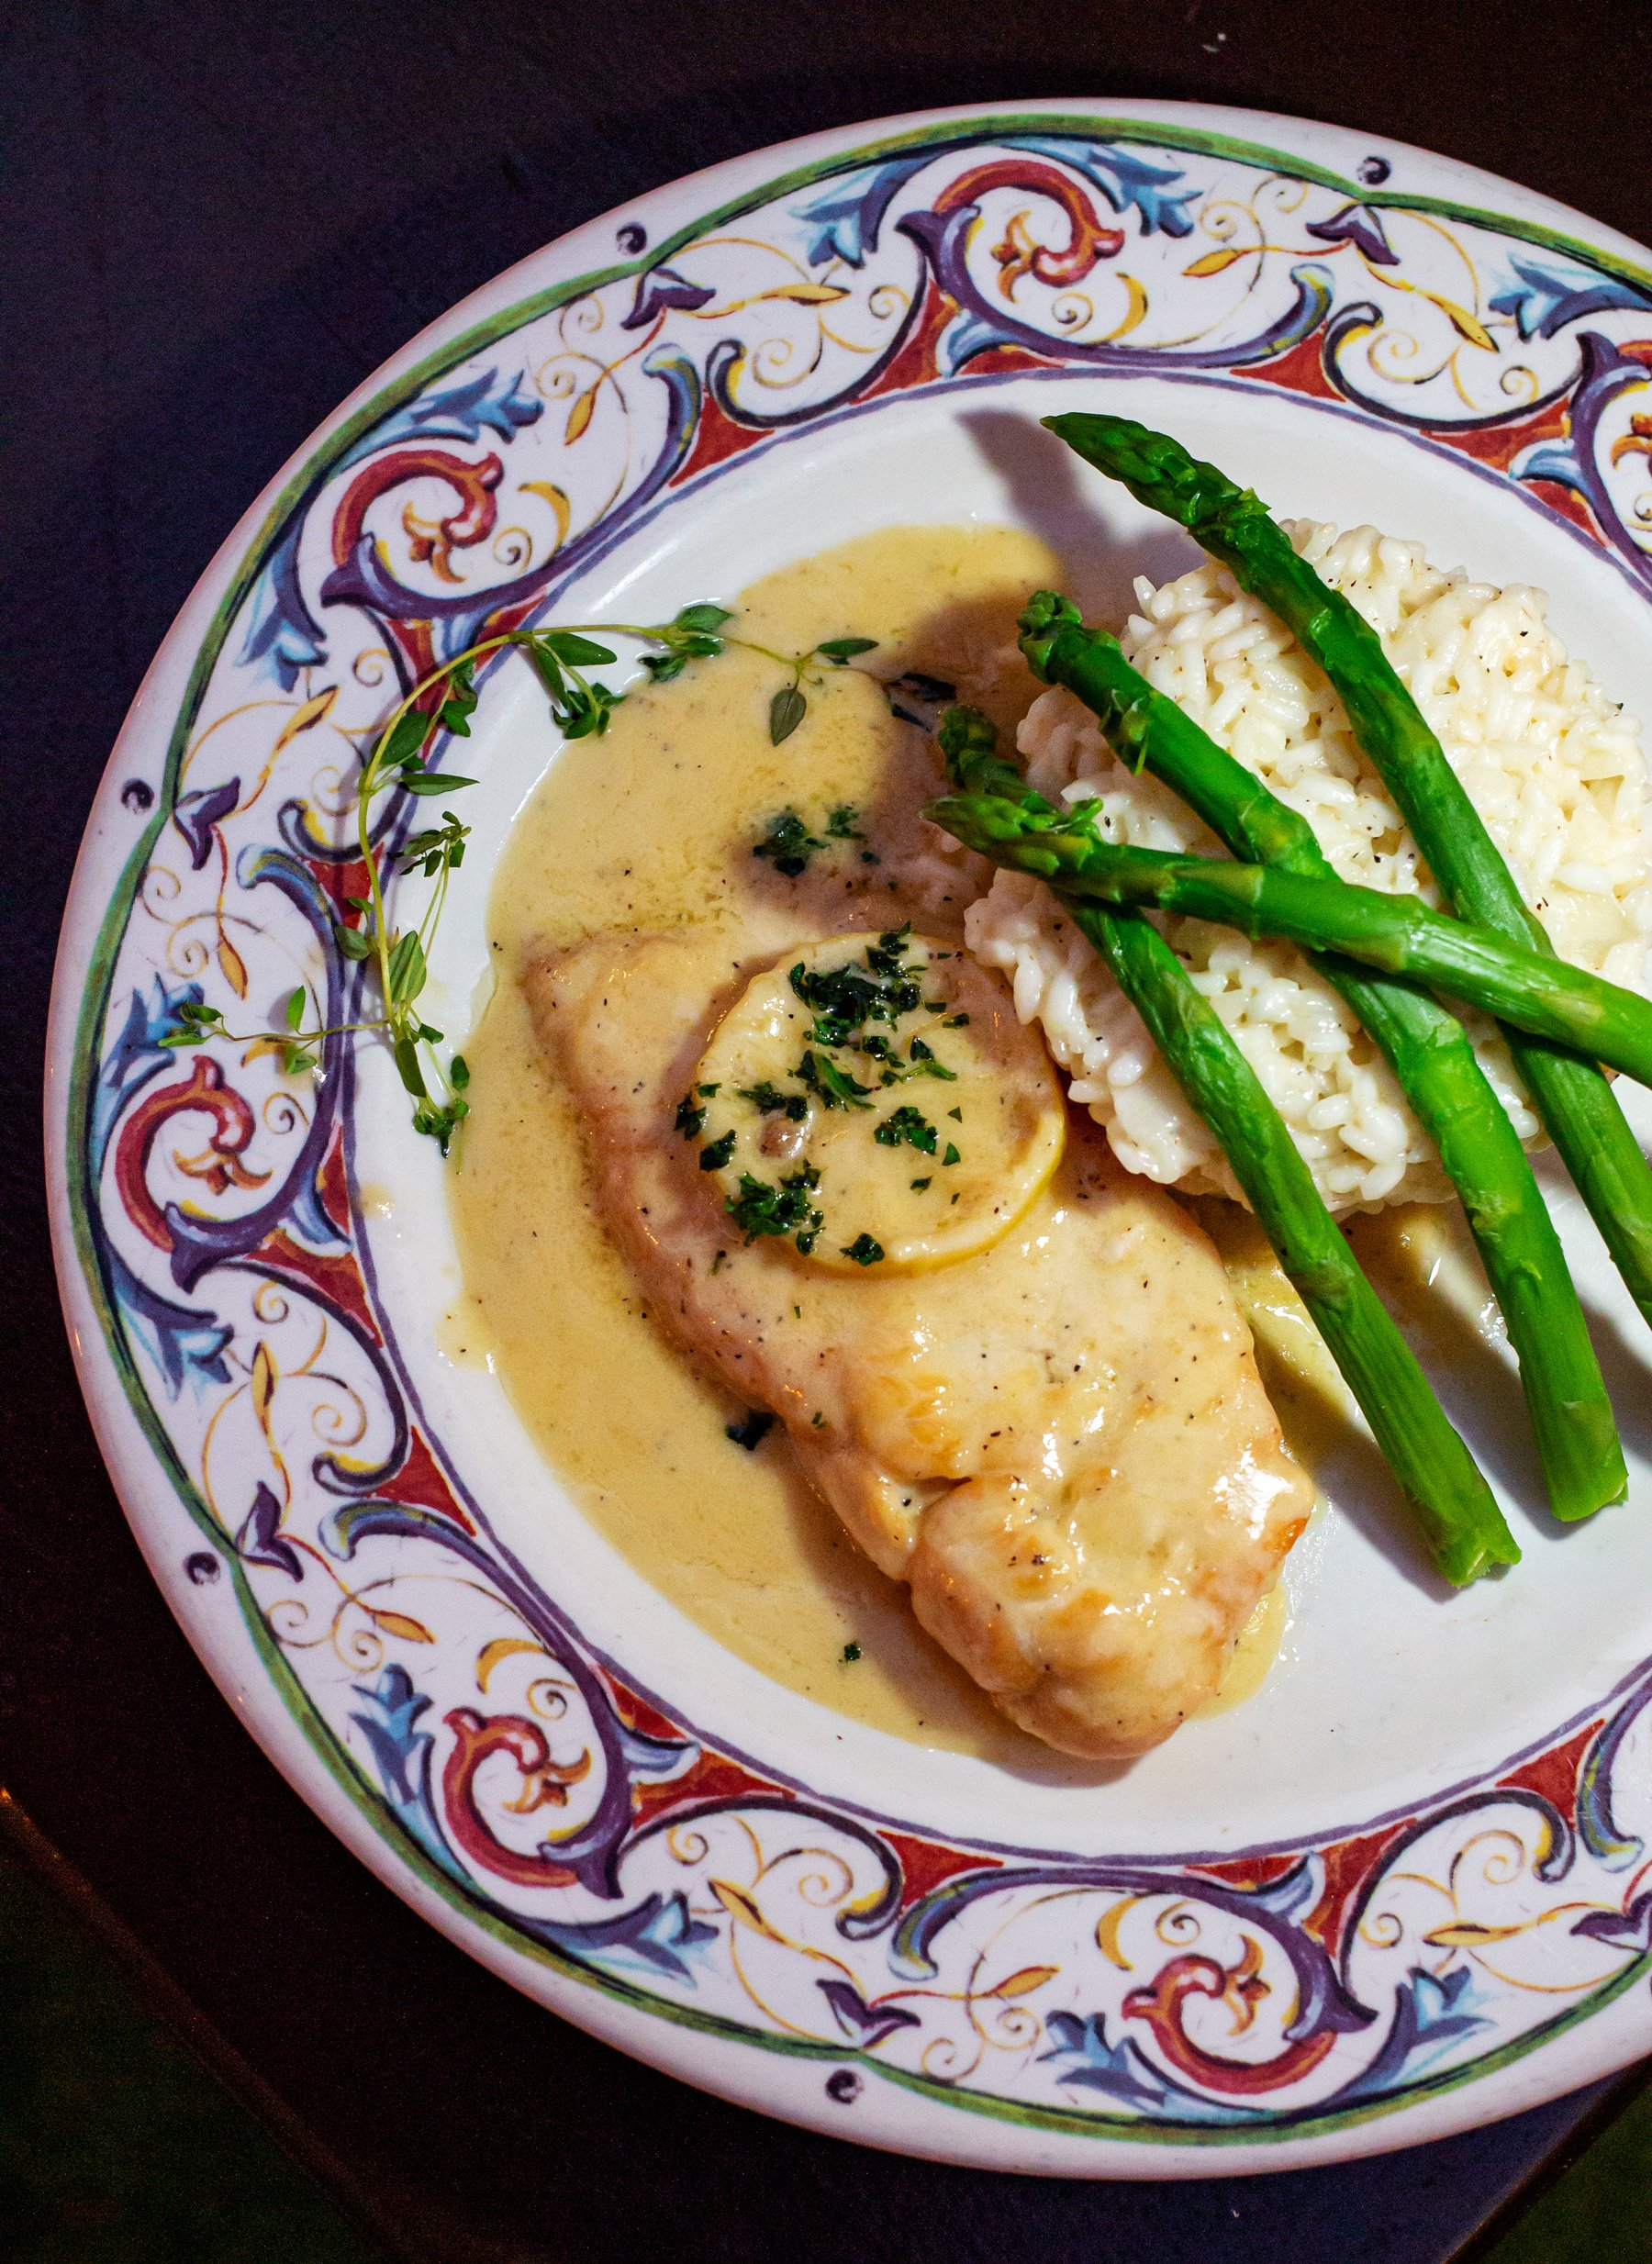 Lemon chicken with risotto and asparagus on a plate.